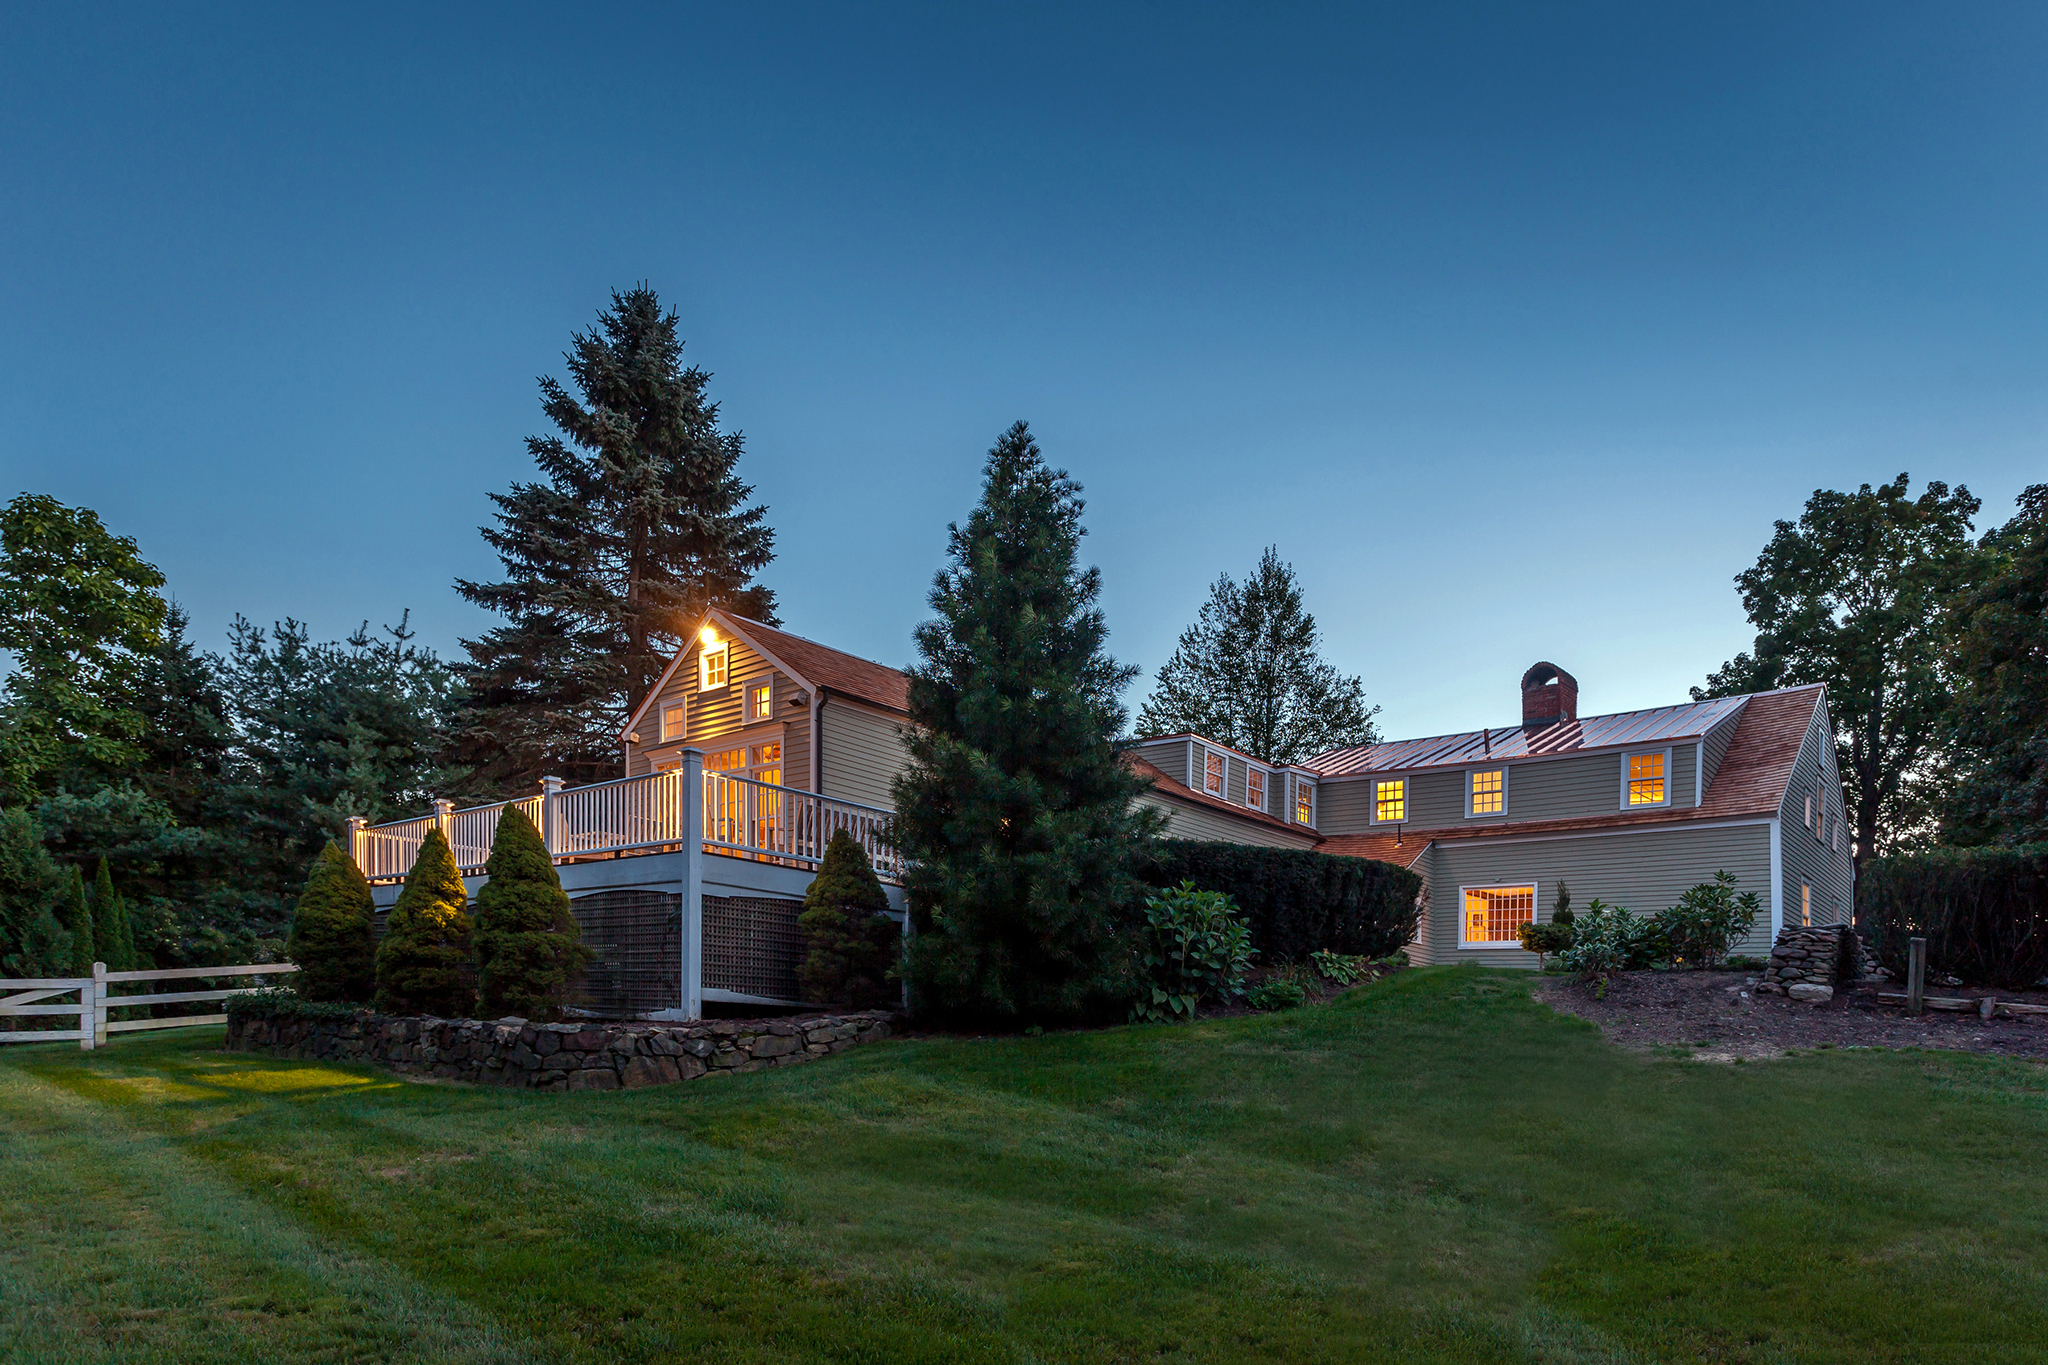 Single Family Home for Sale at Iconic Woodbury Antique 96 Railtree Hill Rd Woodbury, Connecticut 06798 United States